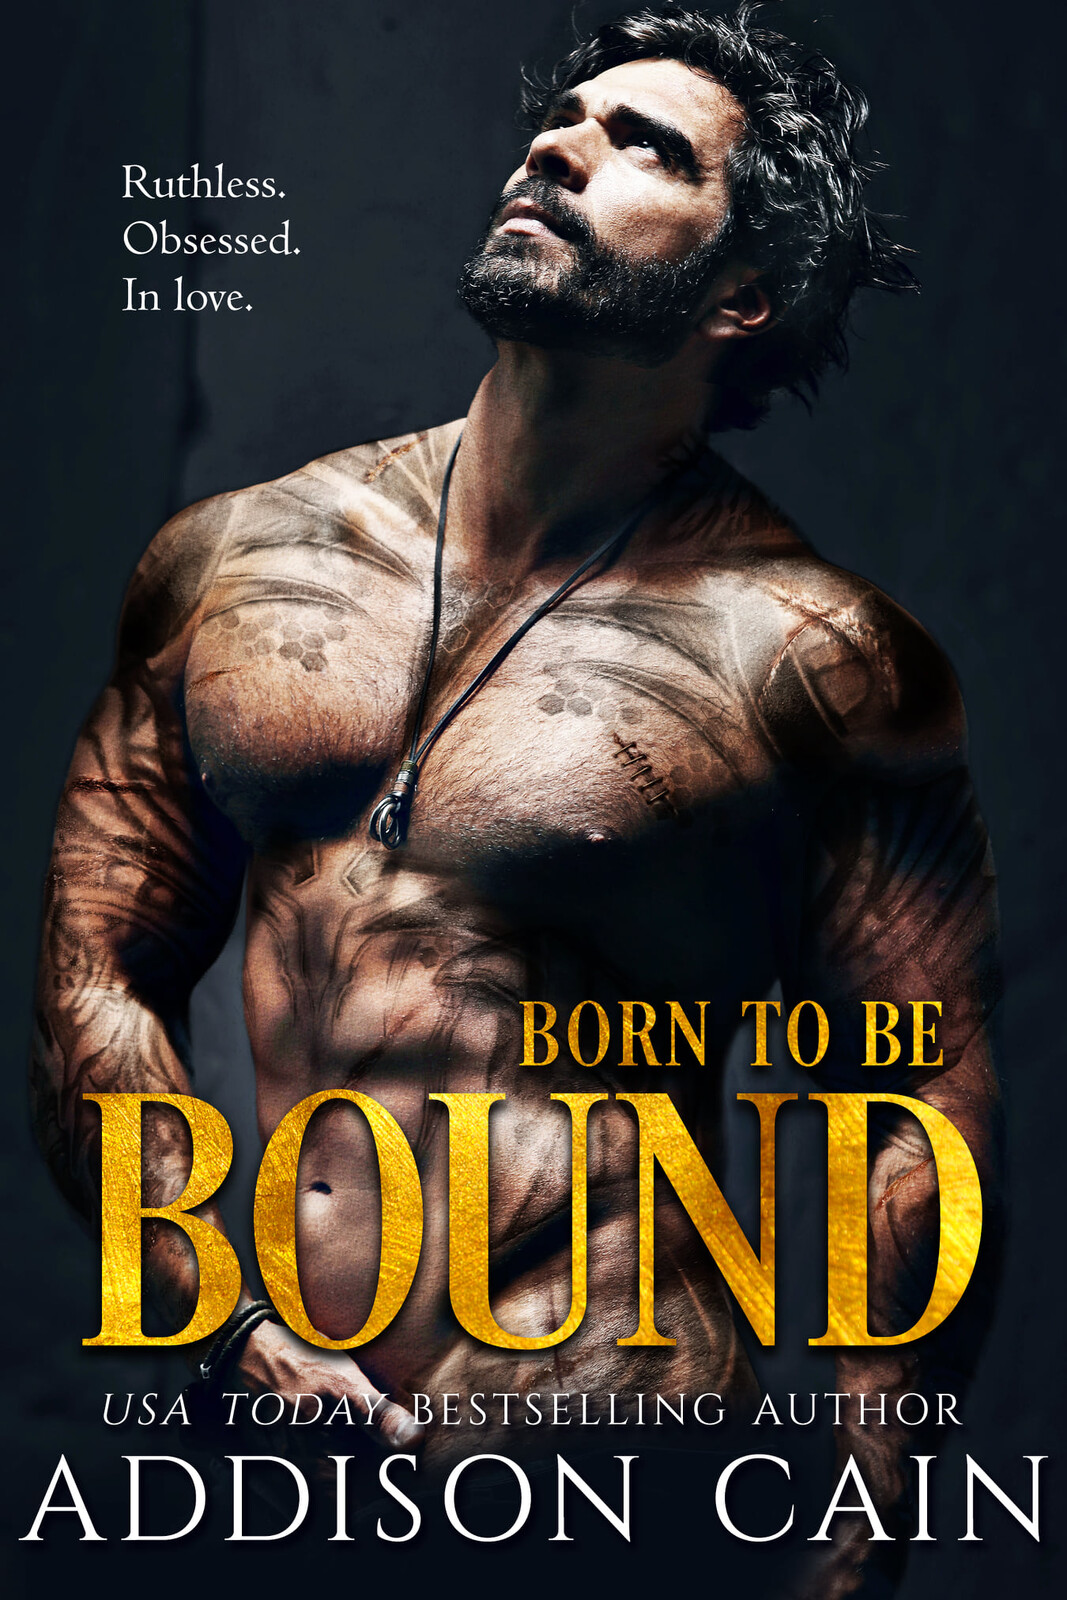 Done for Addison Cain Born to be Bound